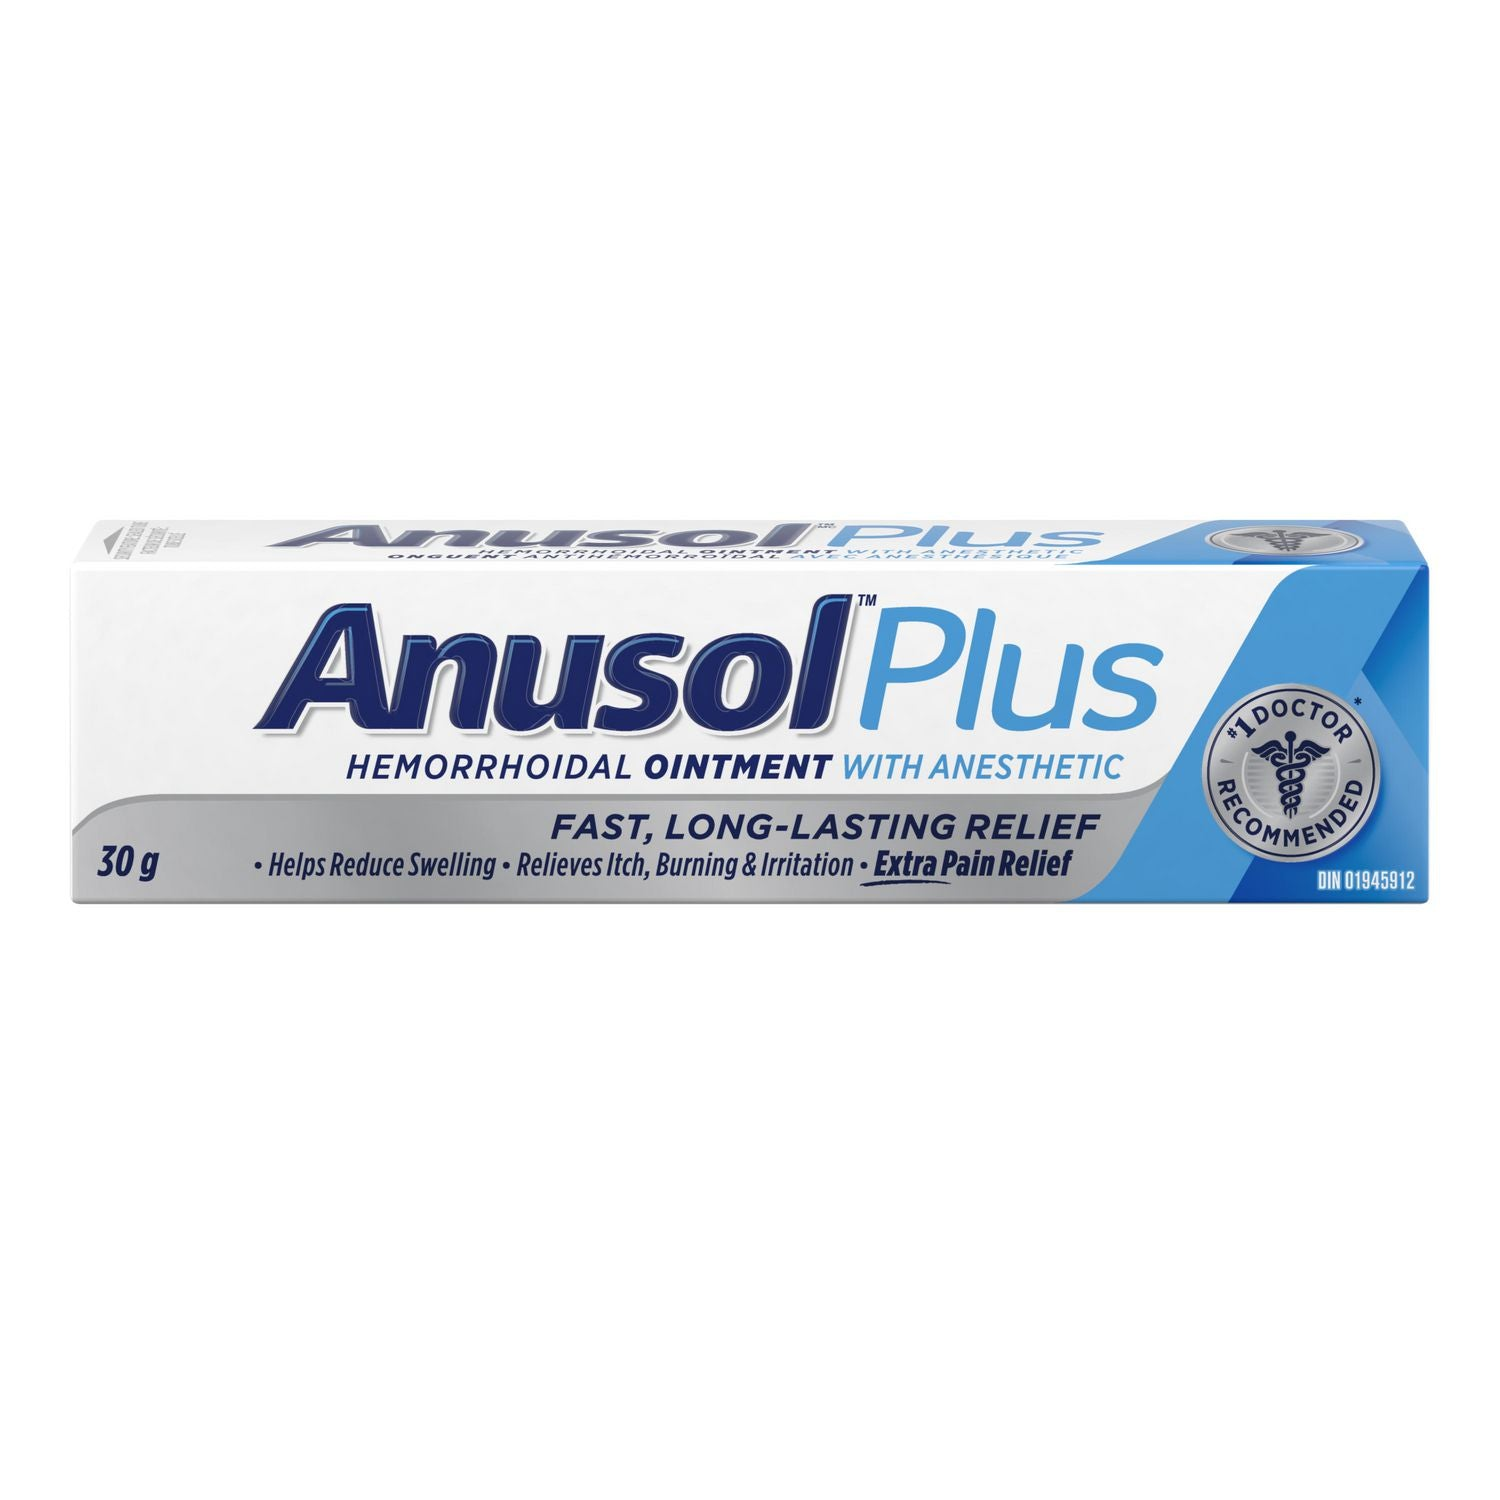 Anusol Plus Hemorrhoidal Ointment with Anesthetic 30g